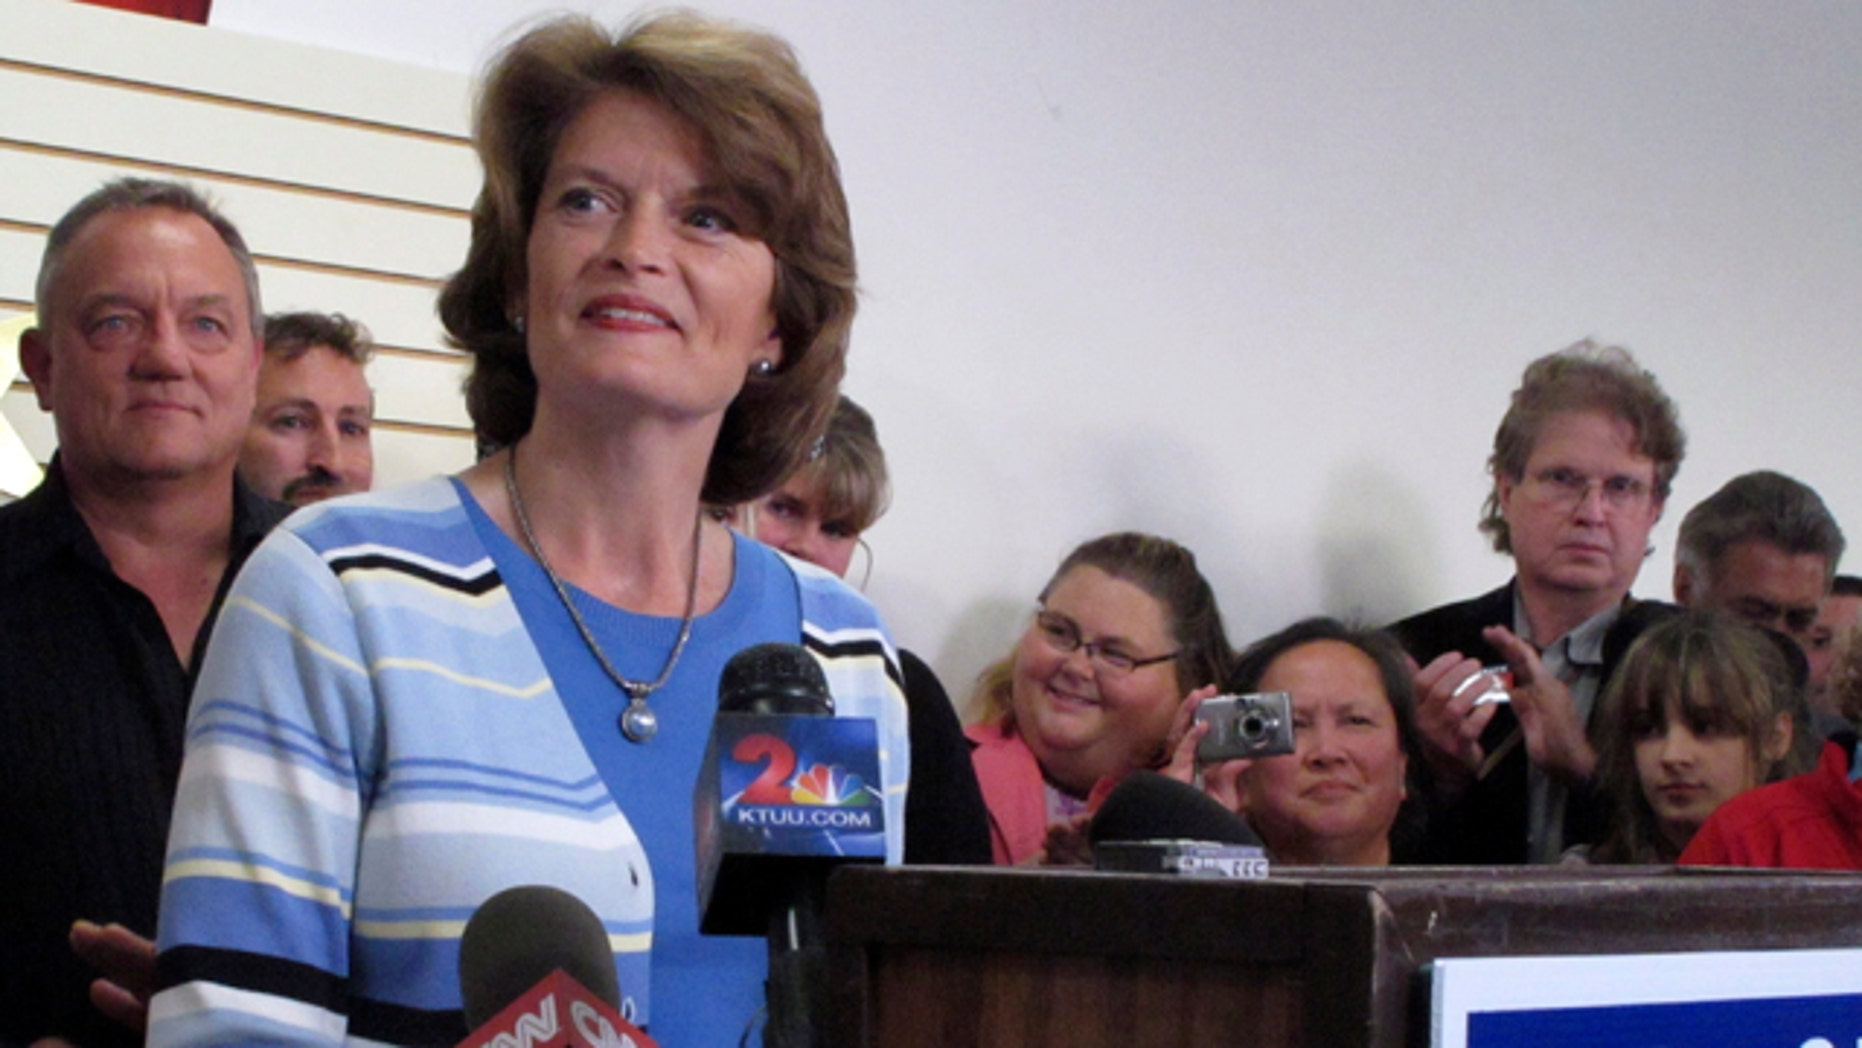 Aug. 31: Sen. Lisa Murkowski gives her concession speech at her campaign headquarters in Anchorage, Alaska.